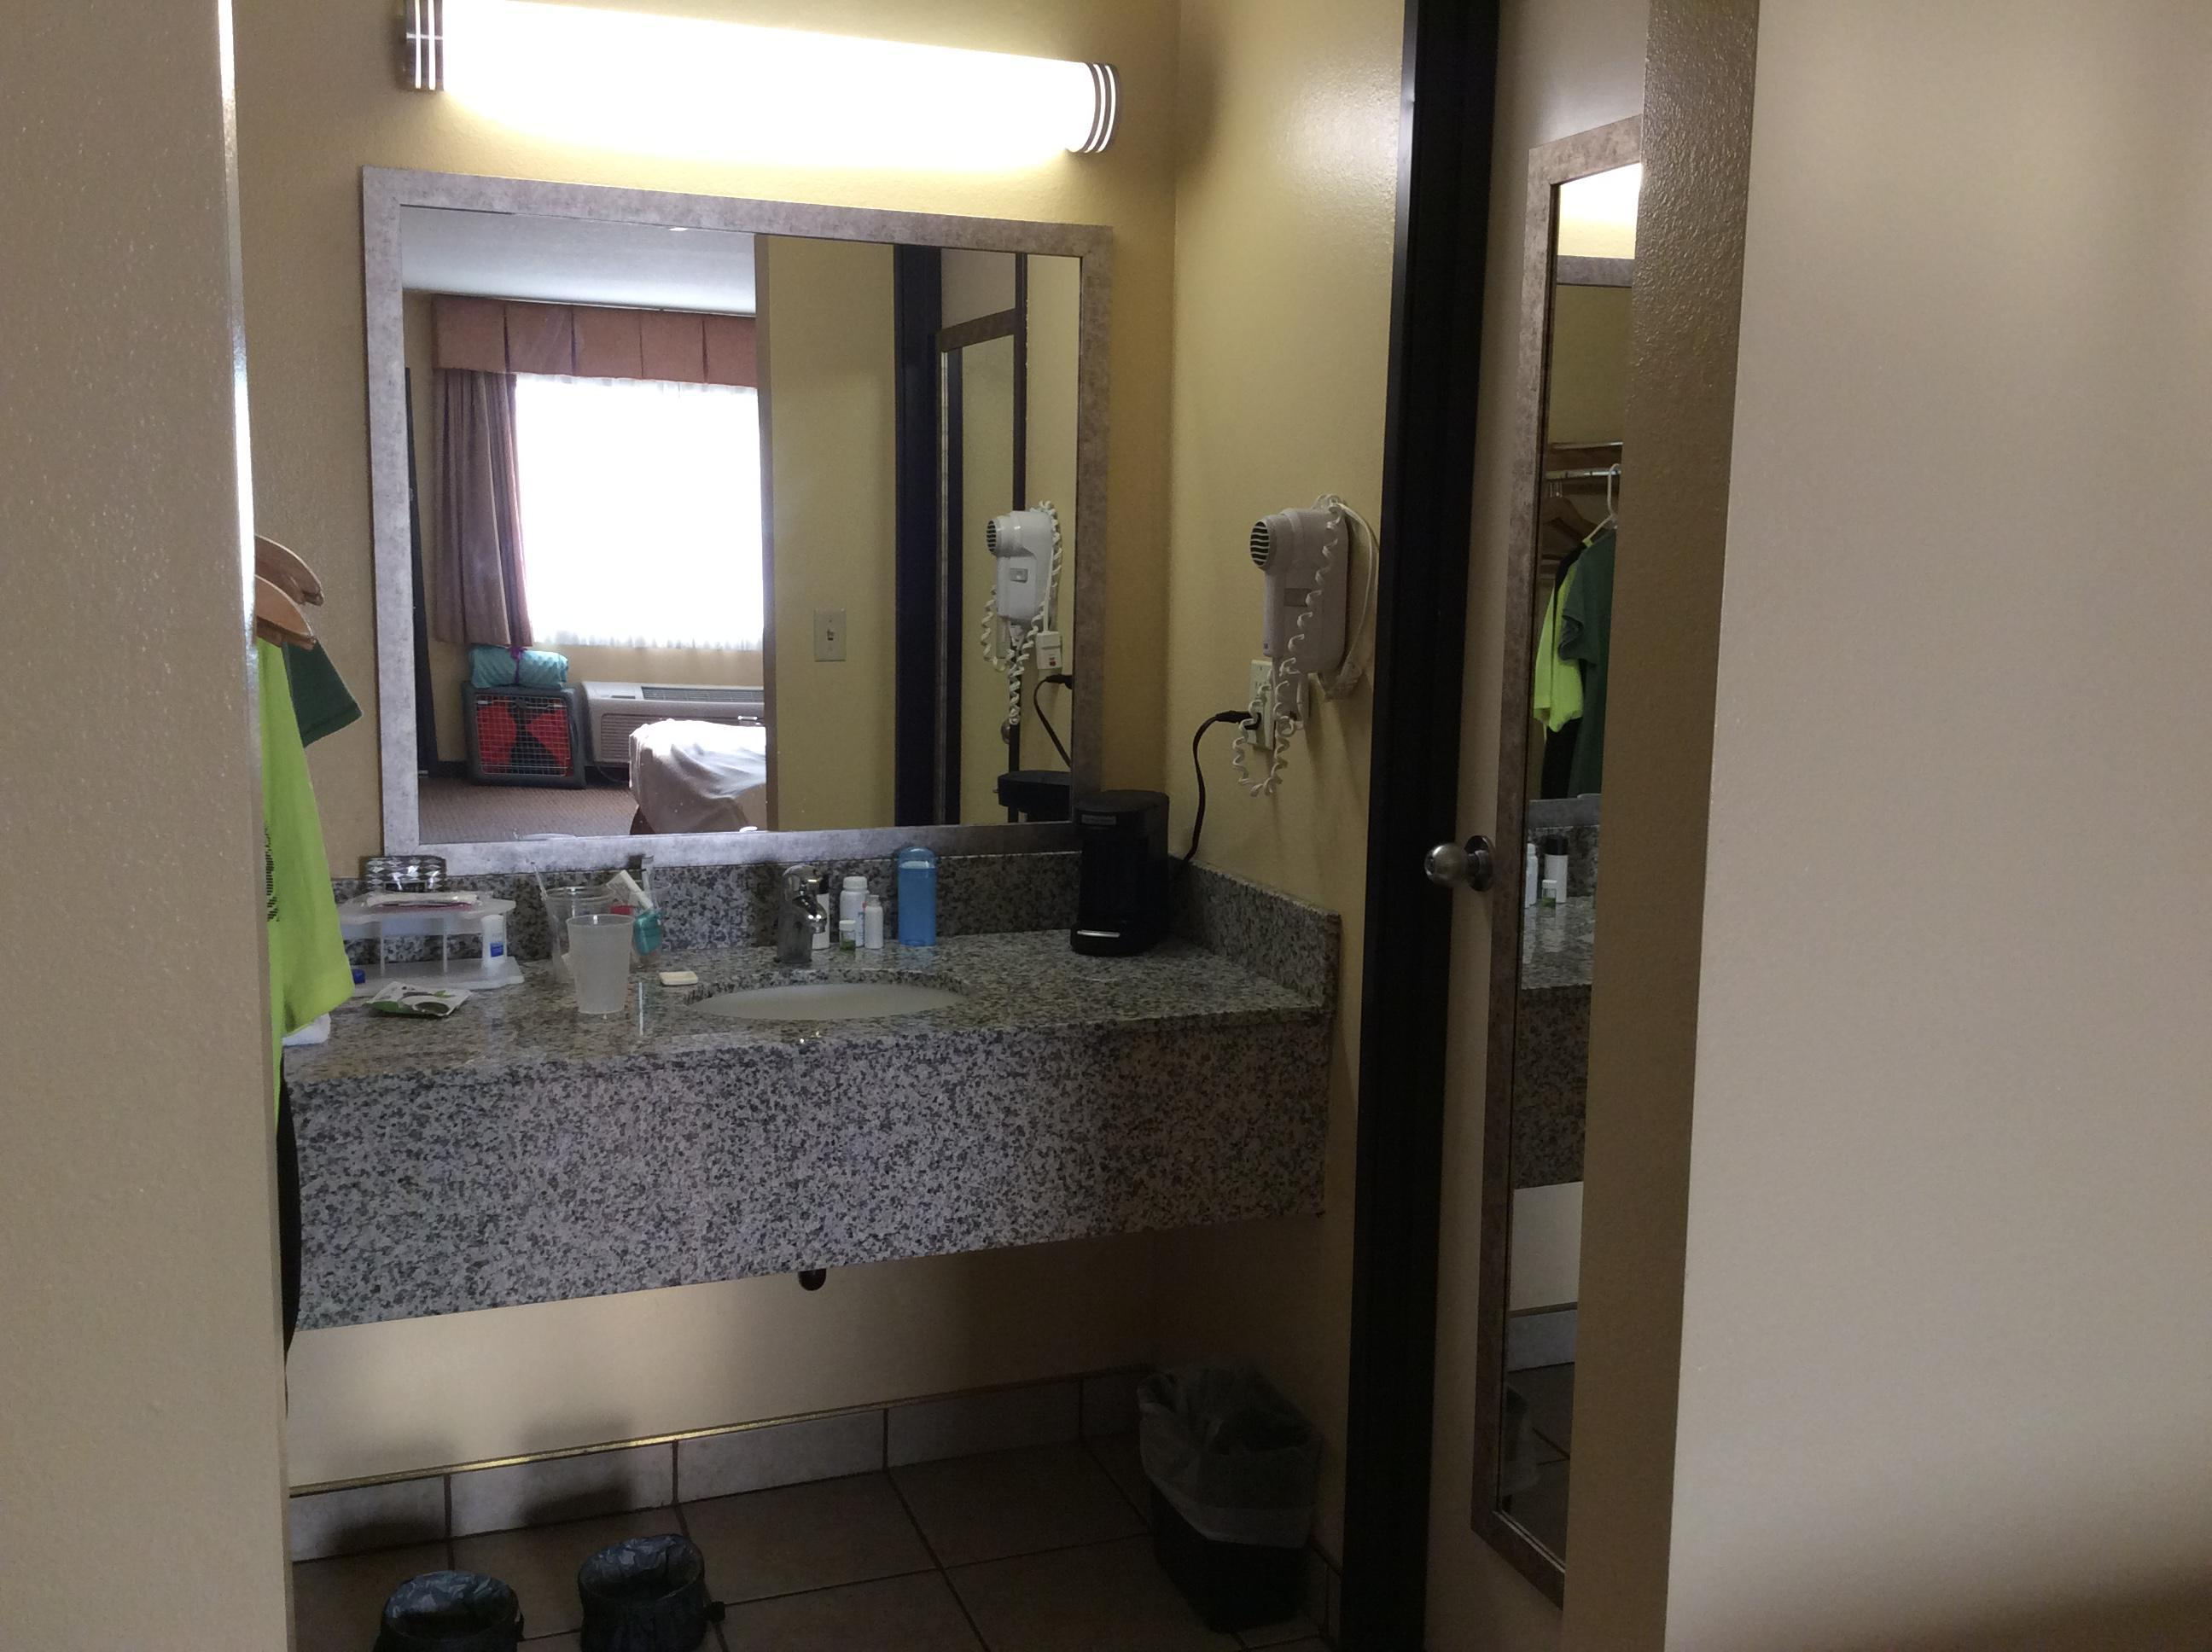 Sink area and coffee maker